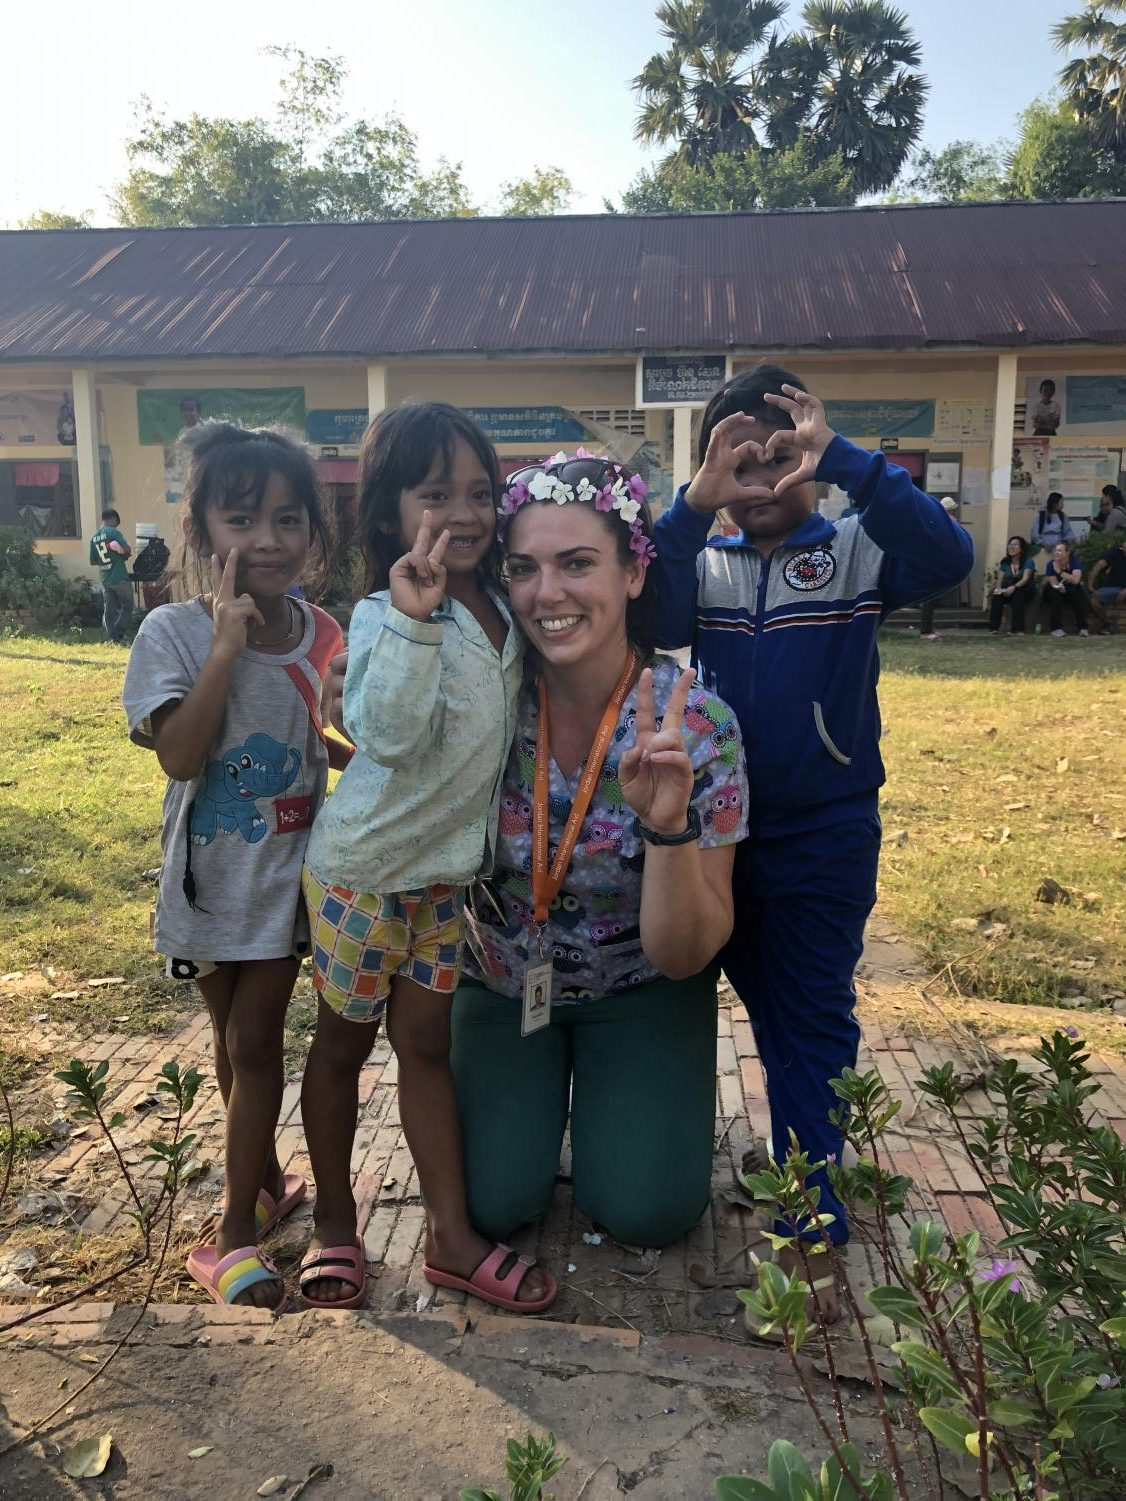 De Anza nursing graduate Emily Miller makes a peace sign and poses with kids.   Source: Emily Miller